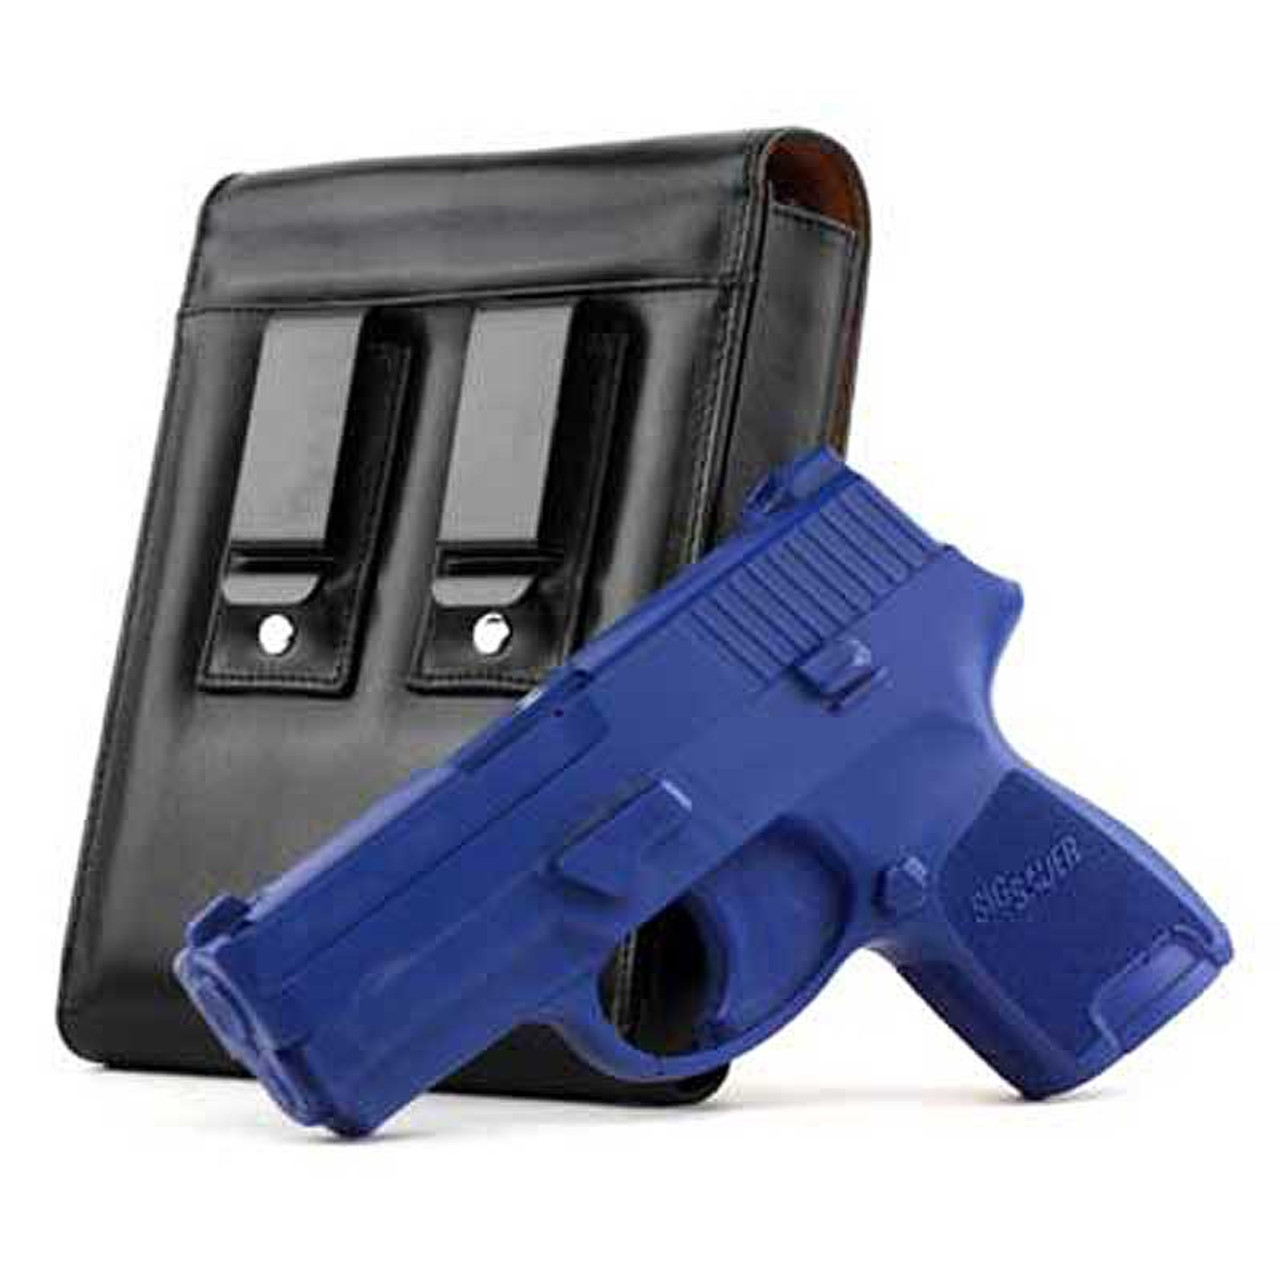 Sig Sauer P250 Sub Compact Holster